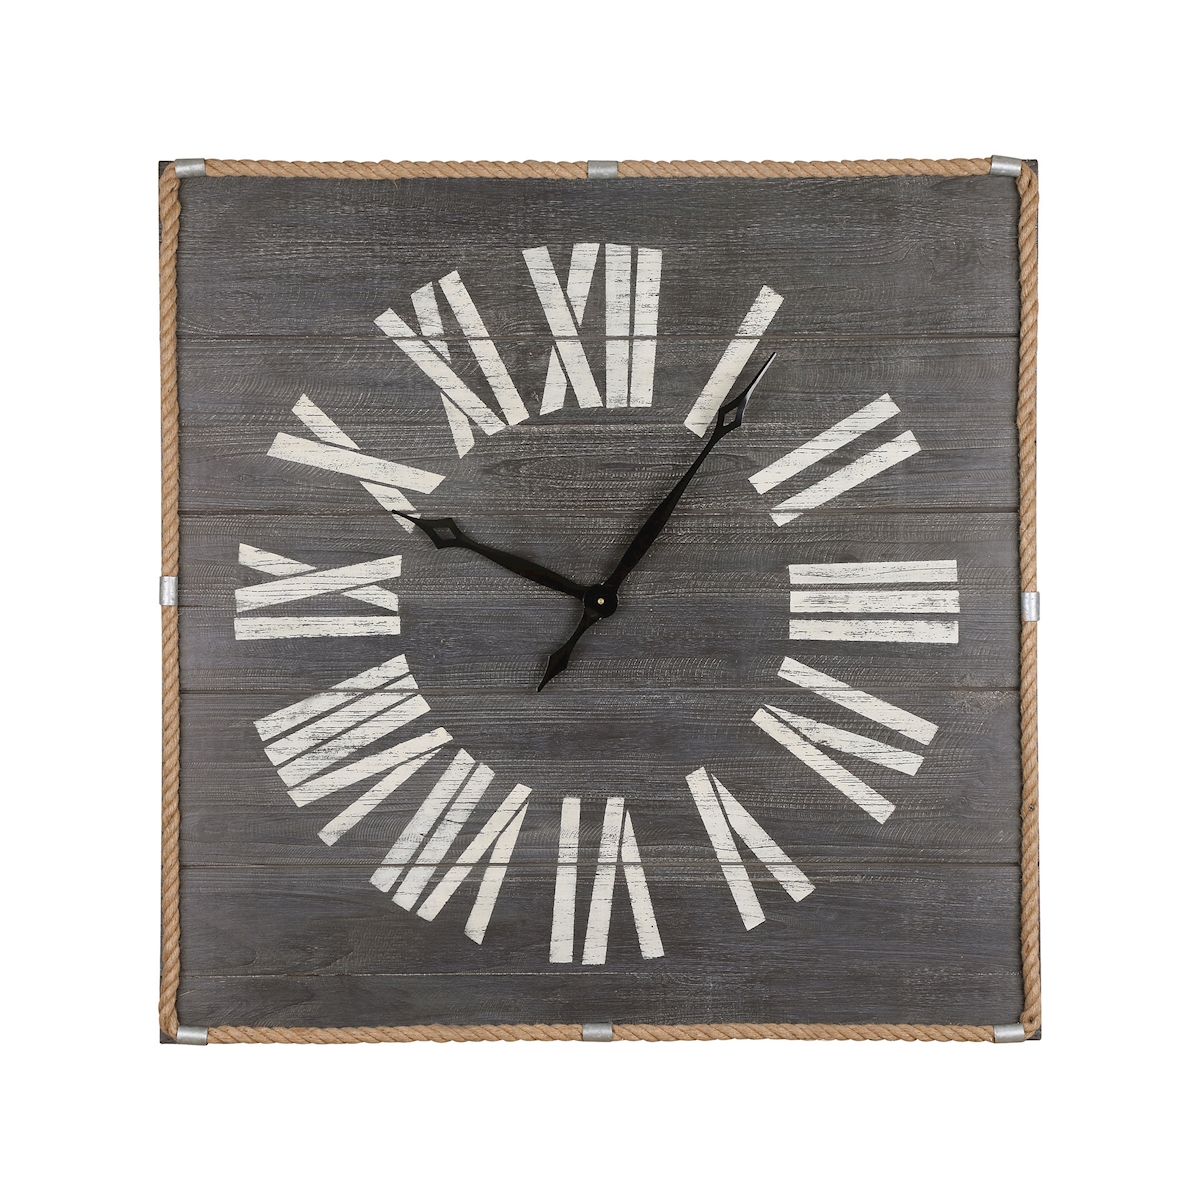 Rum Cay Wall Clock 3129-1147 | ELK Home